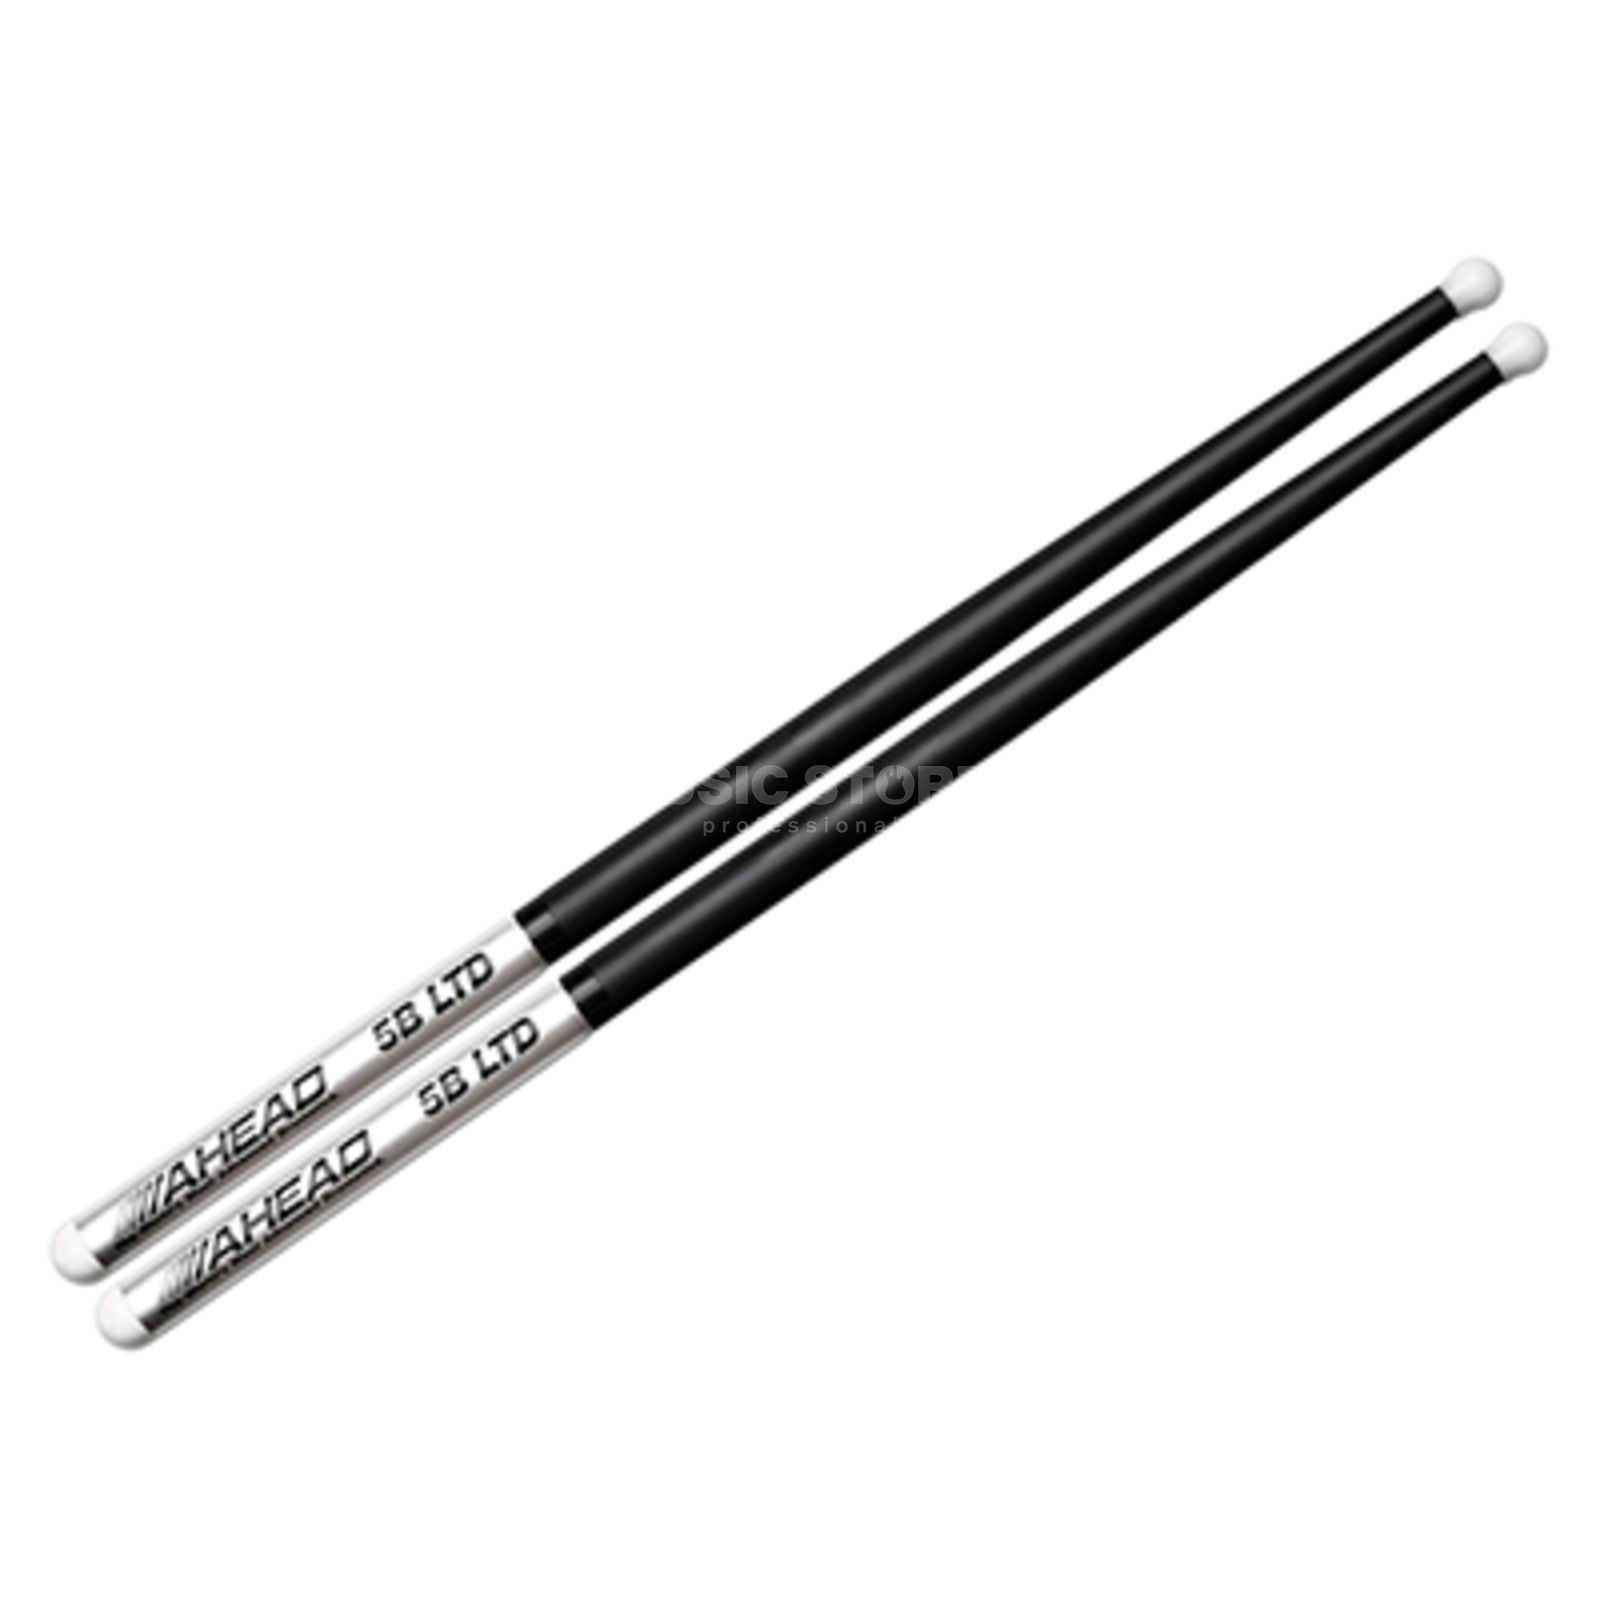 Ahead Sticks 5B LTD Aluminium Sticks Long Taper Produktbild